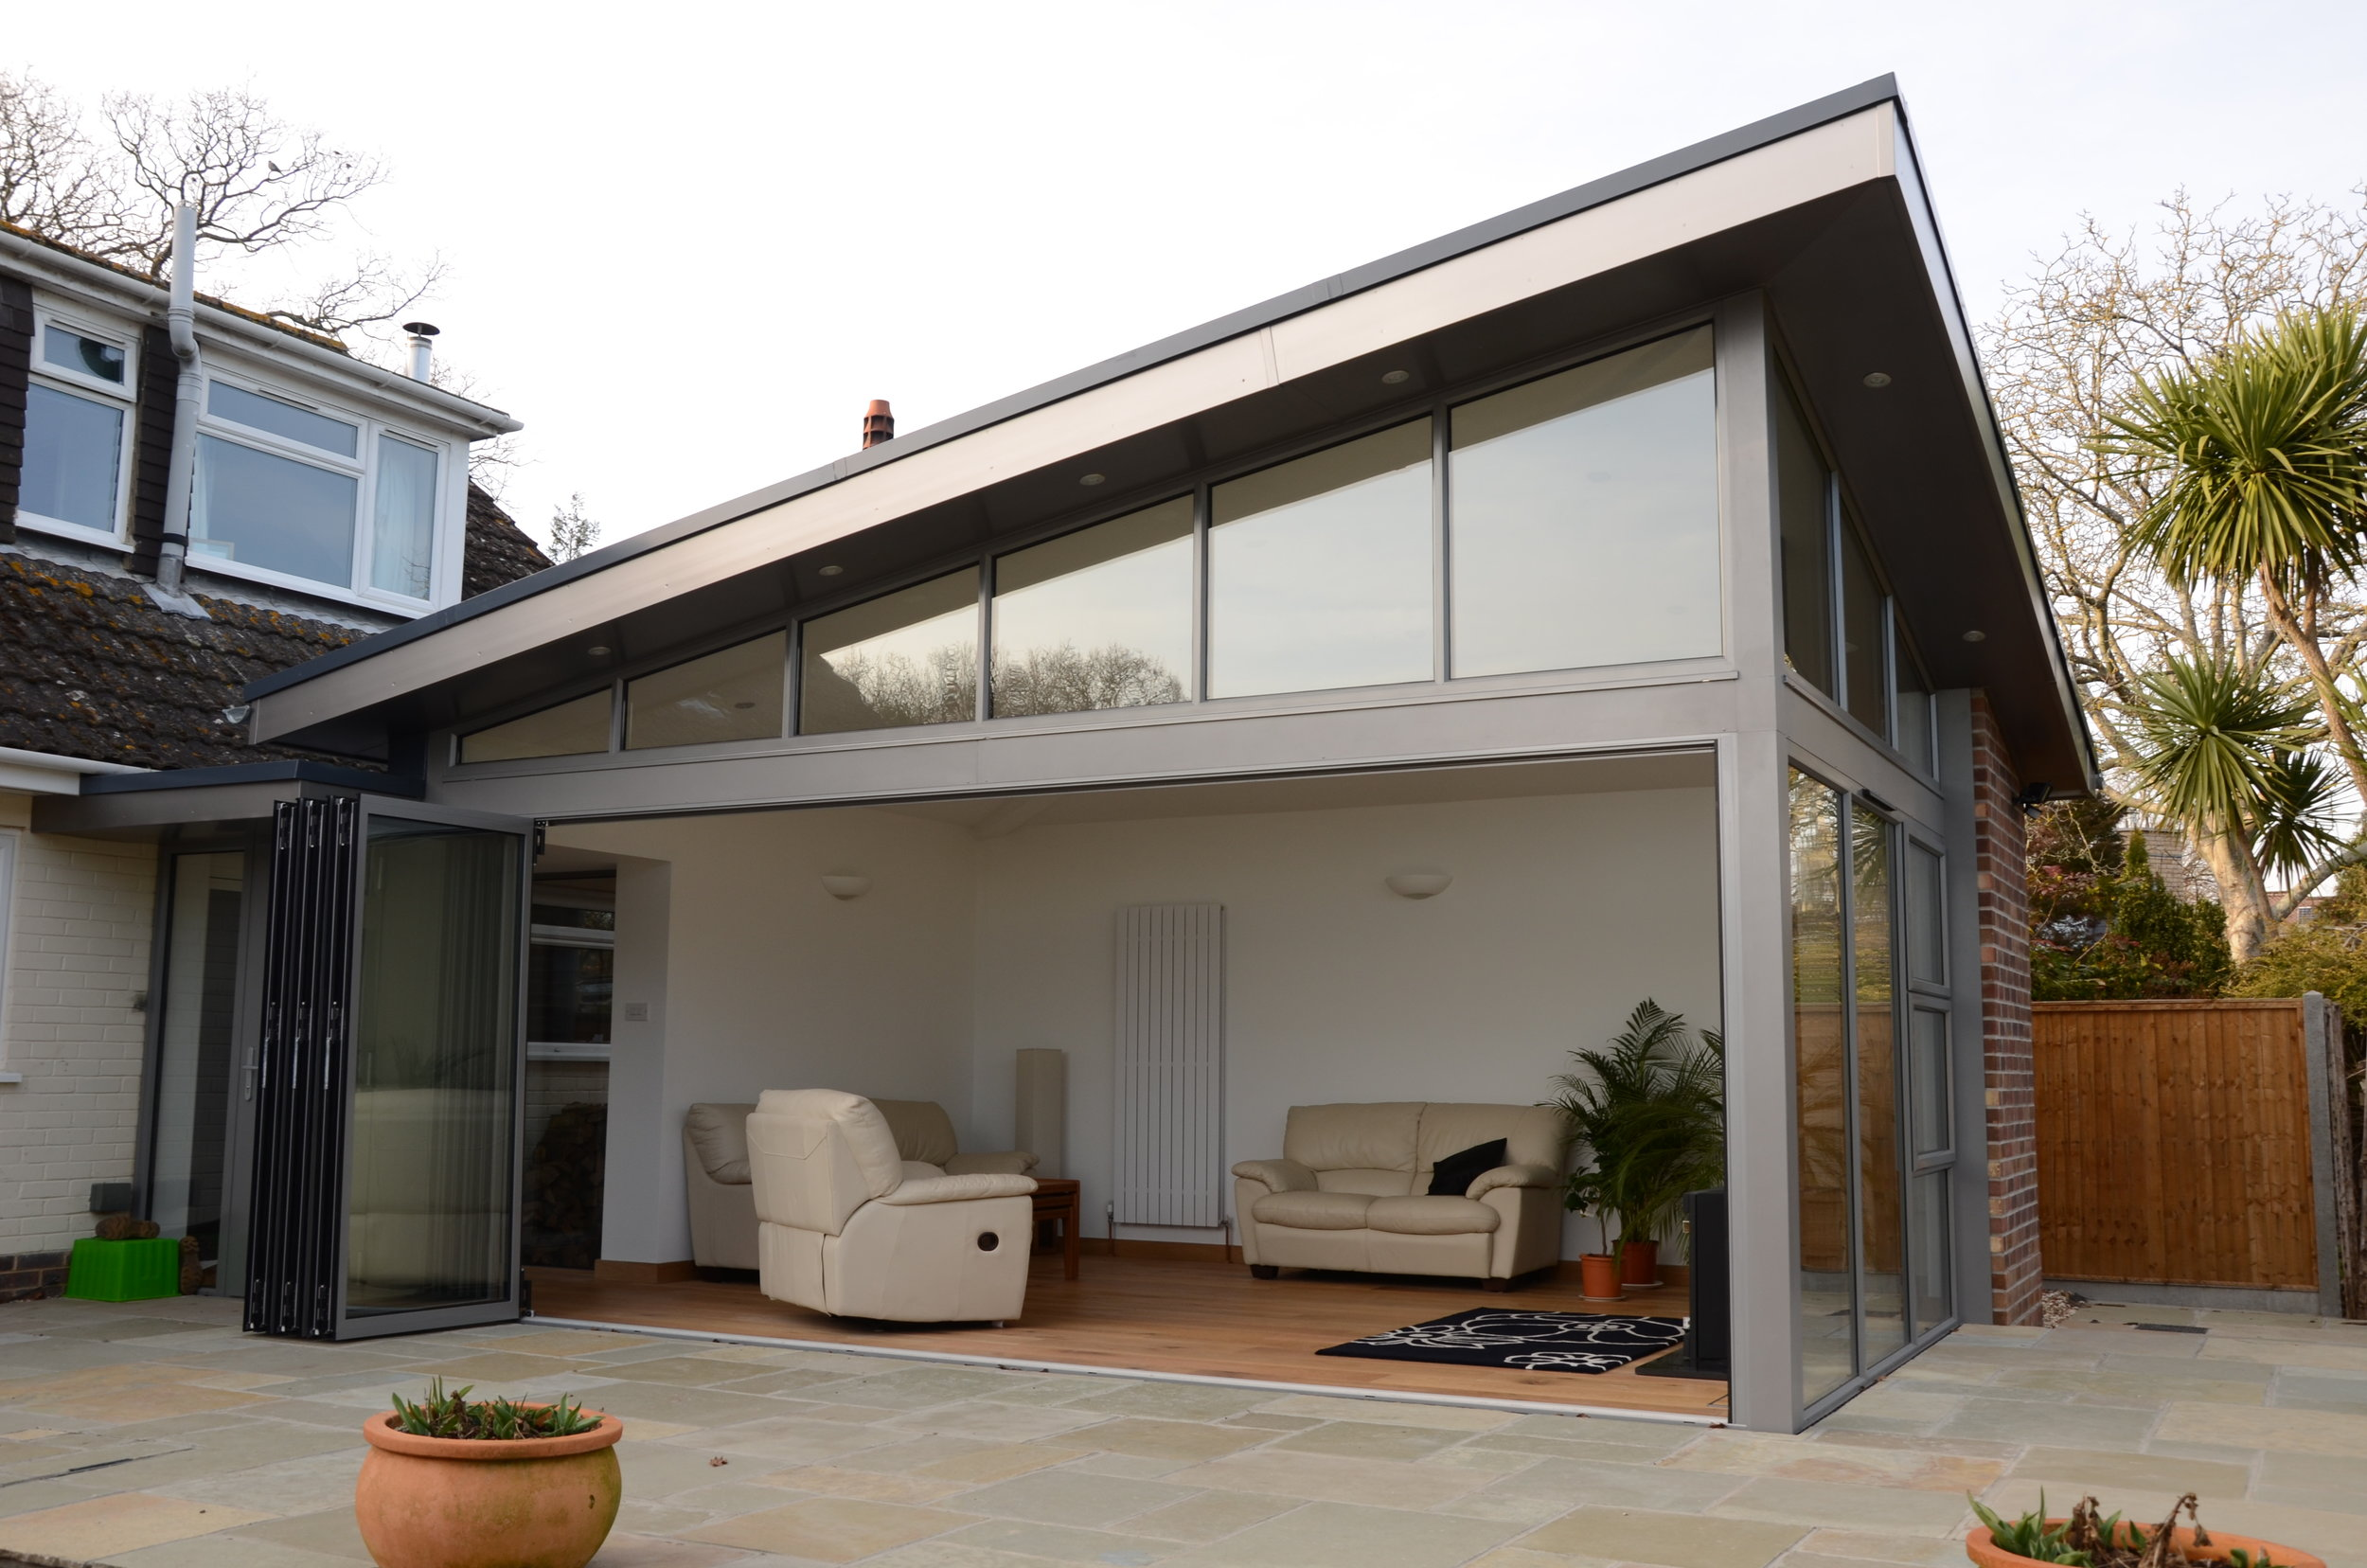 House Extension, garden room